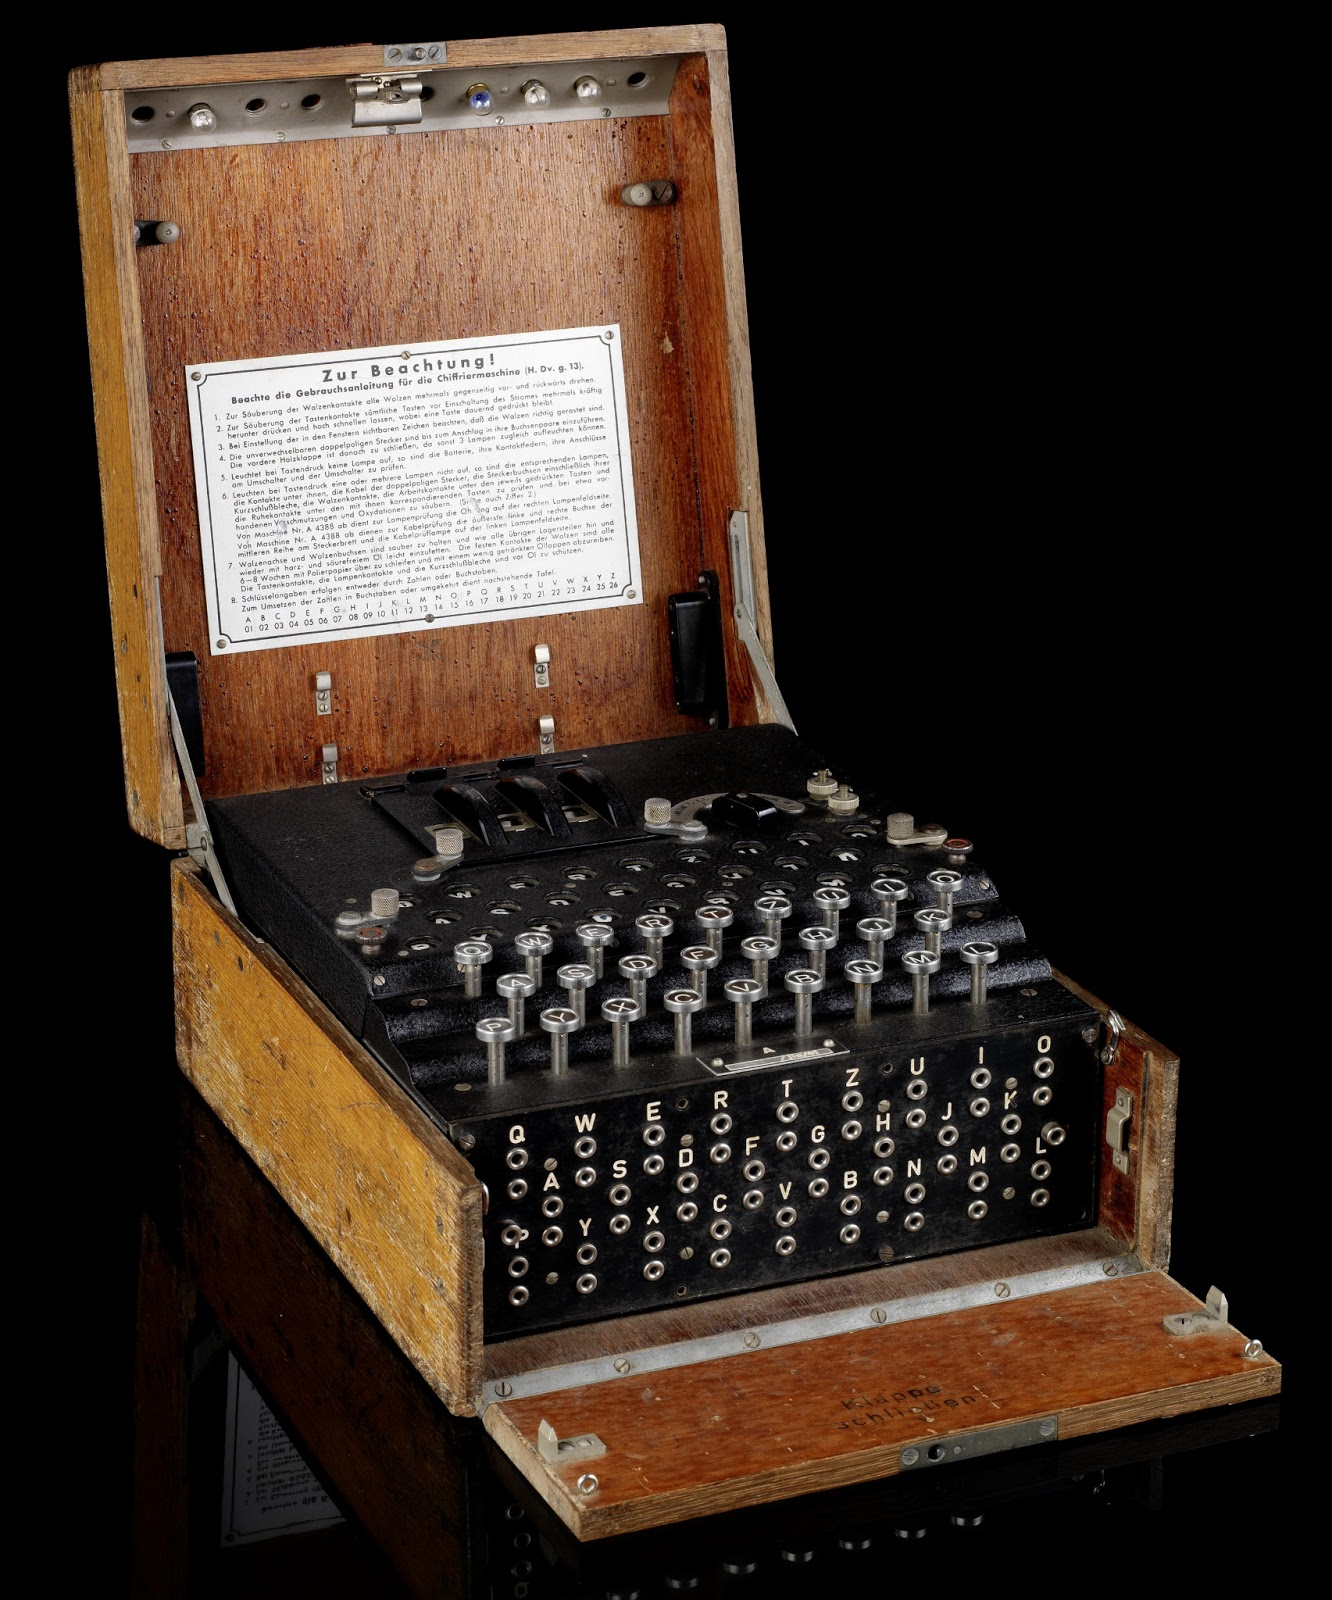 how to get more enigma codes